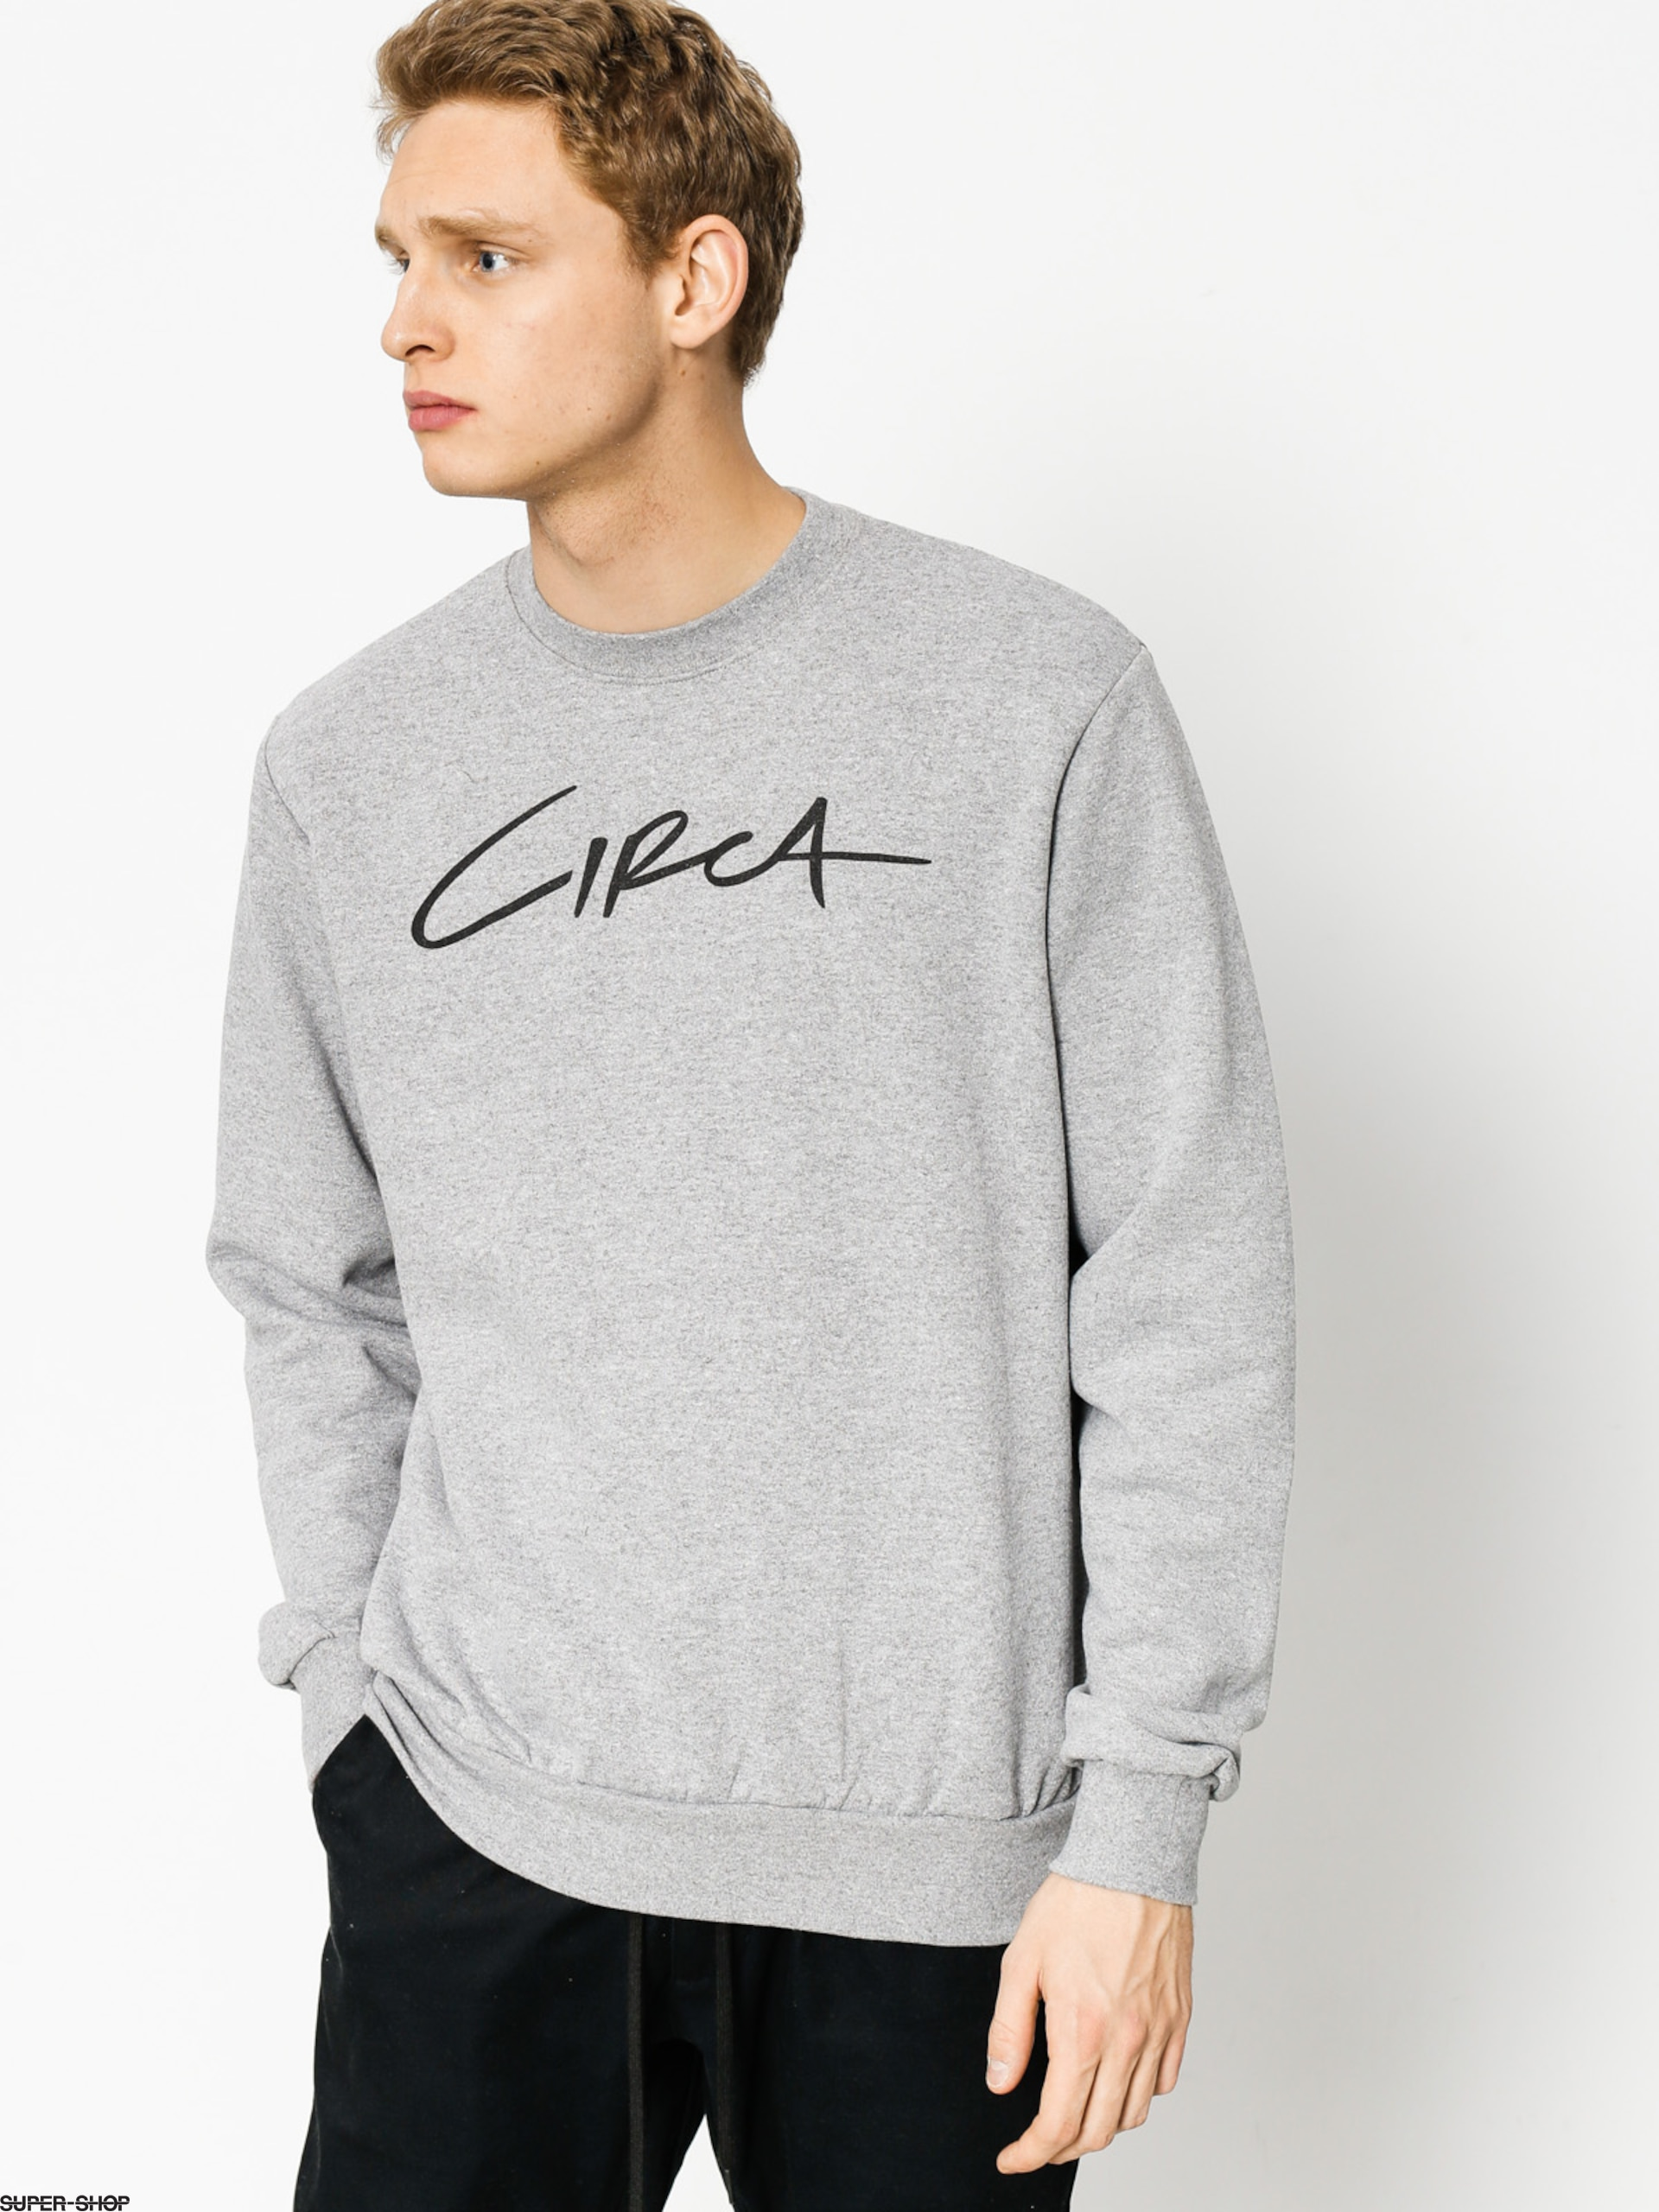 Circa Sweatshirt Select